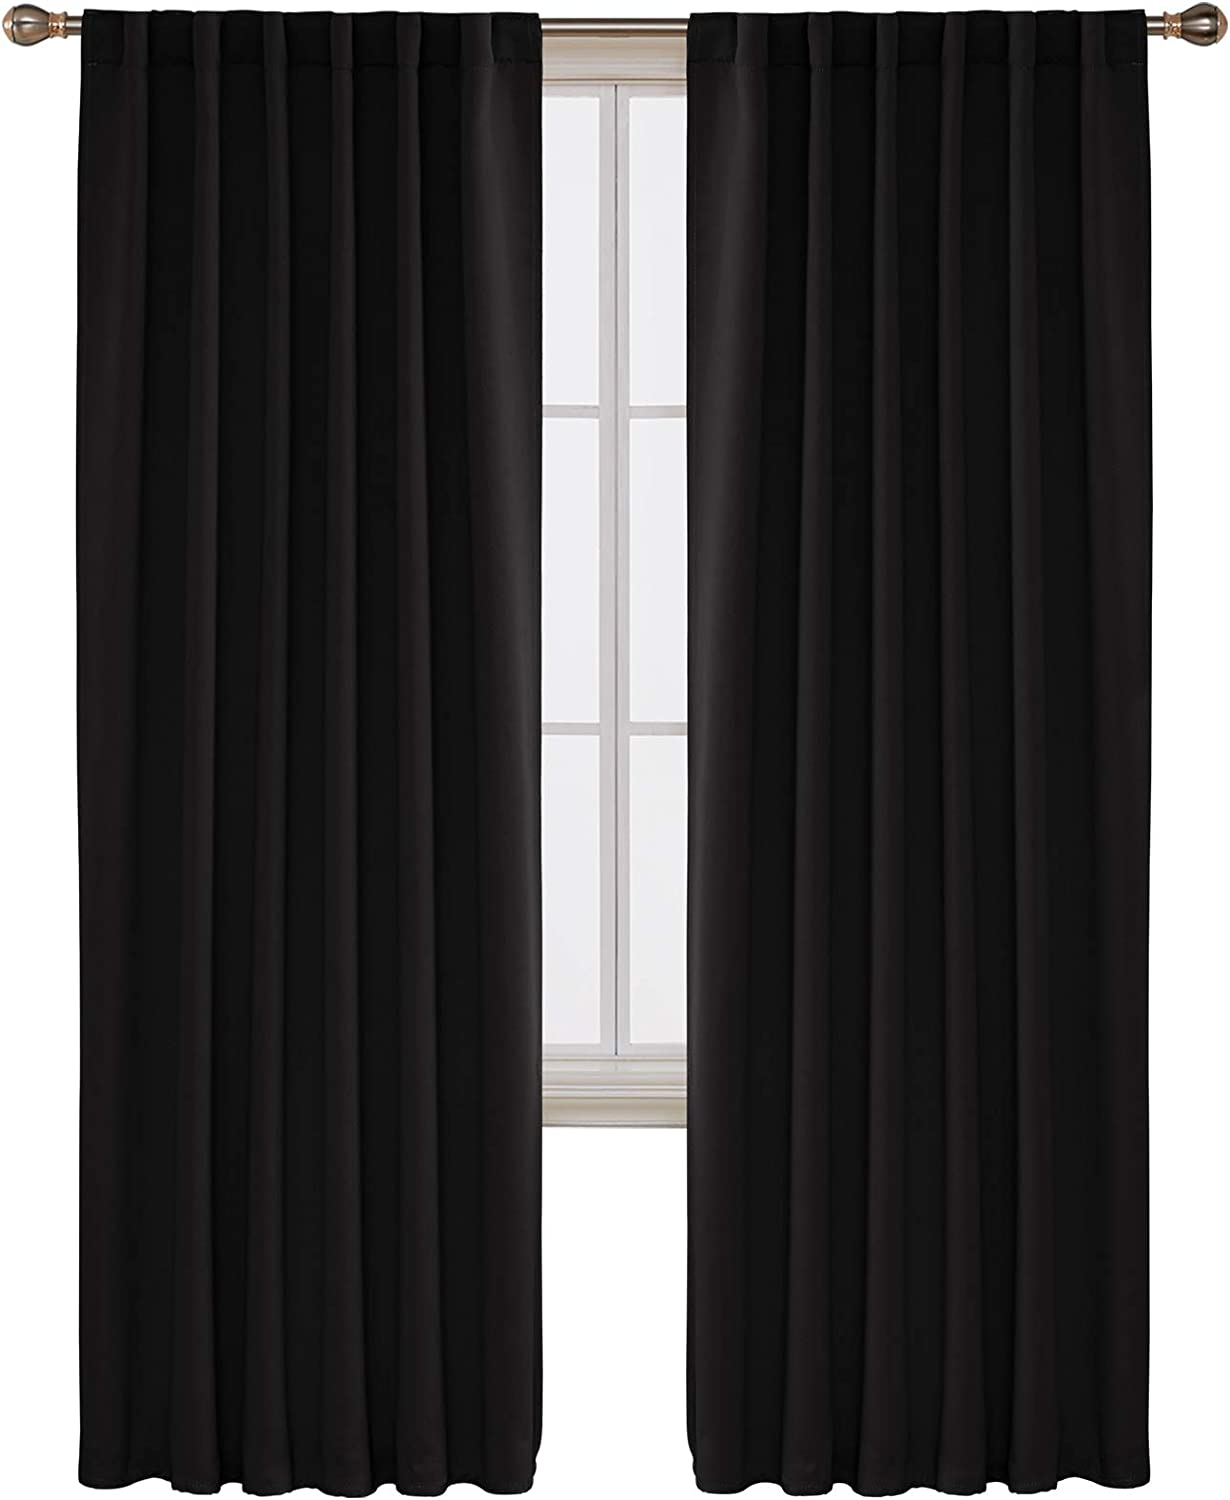 Deconovo Solid Back Tab and Rod Pocket Blackout Curtains Thermal Insulated Drapes and Curtains for Sliding Glass Door 52x95 Inch Black Set of 2 Panels